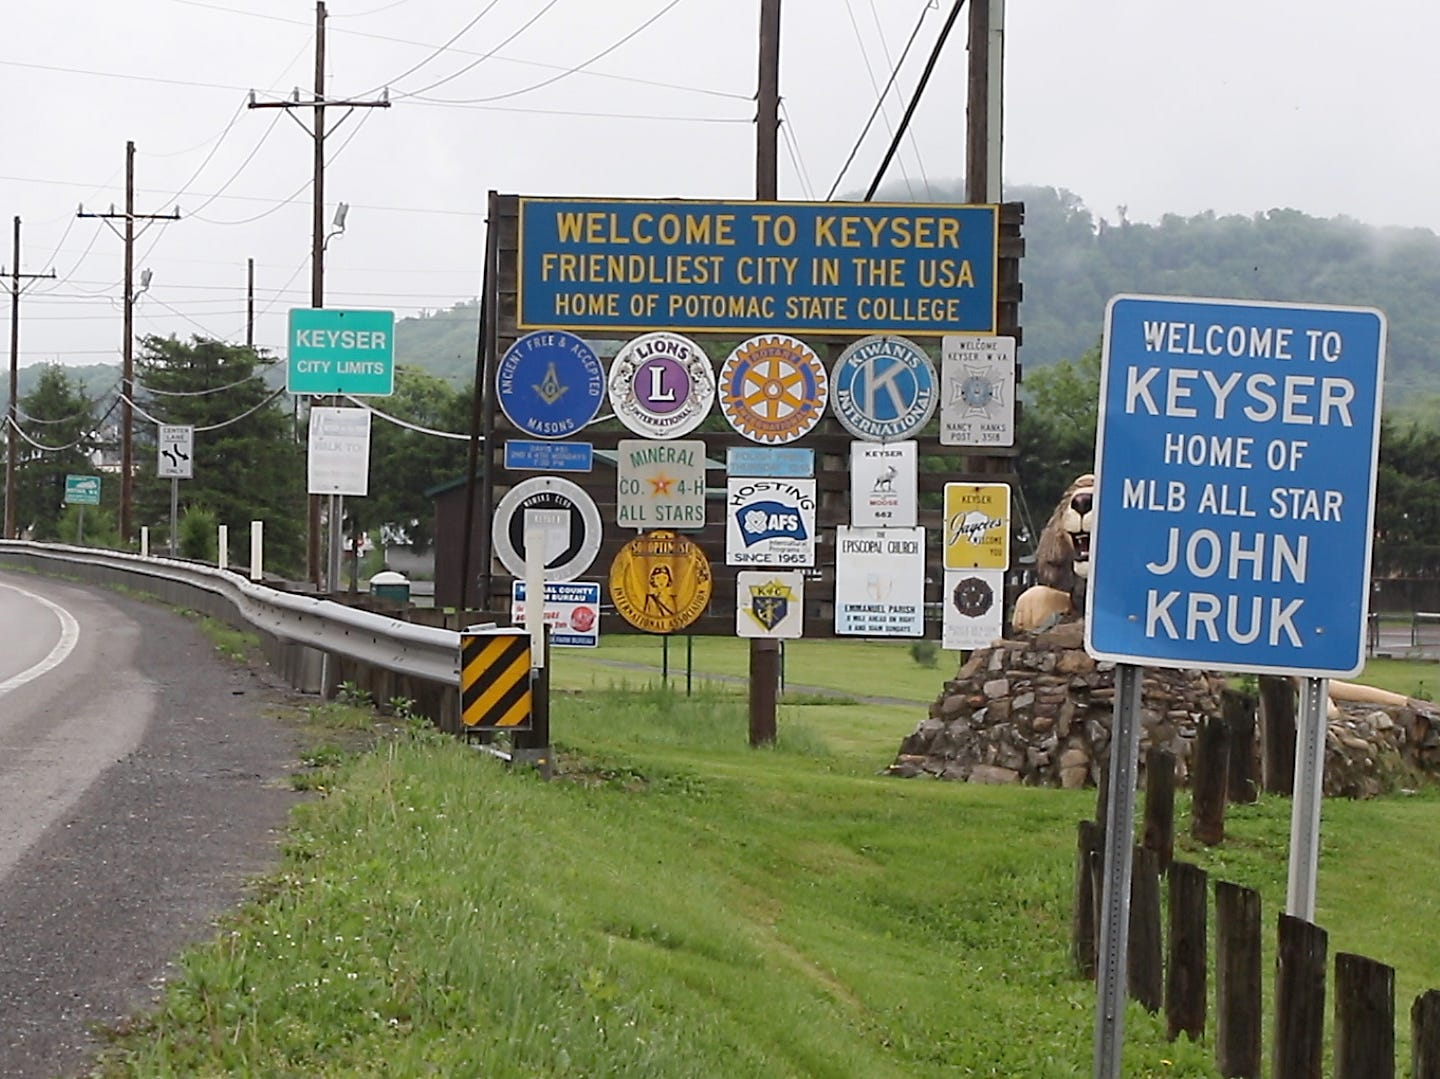 Keyser, a town of 5,500 in the northeastern corner of West Virginia, thrived until the 1990s. Now it appears to be in a downward spiral, as jobs have disappeared and the opioid crisis has turned many users into addicts.